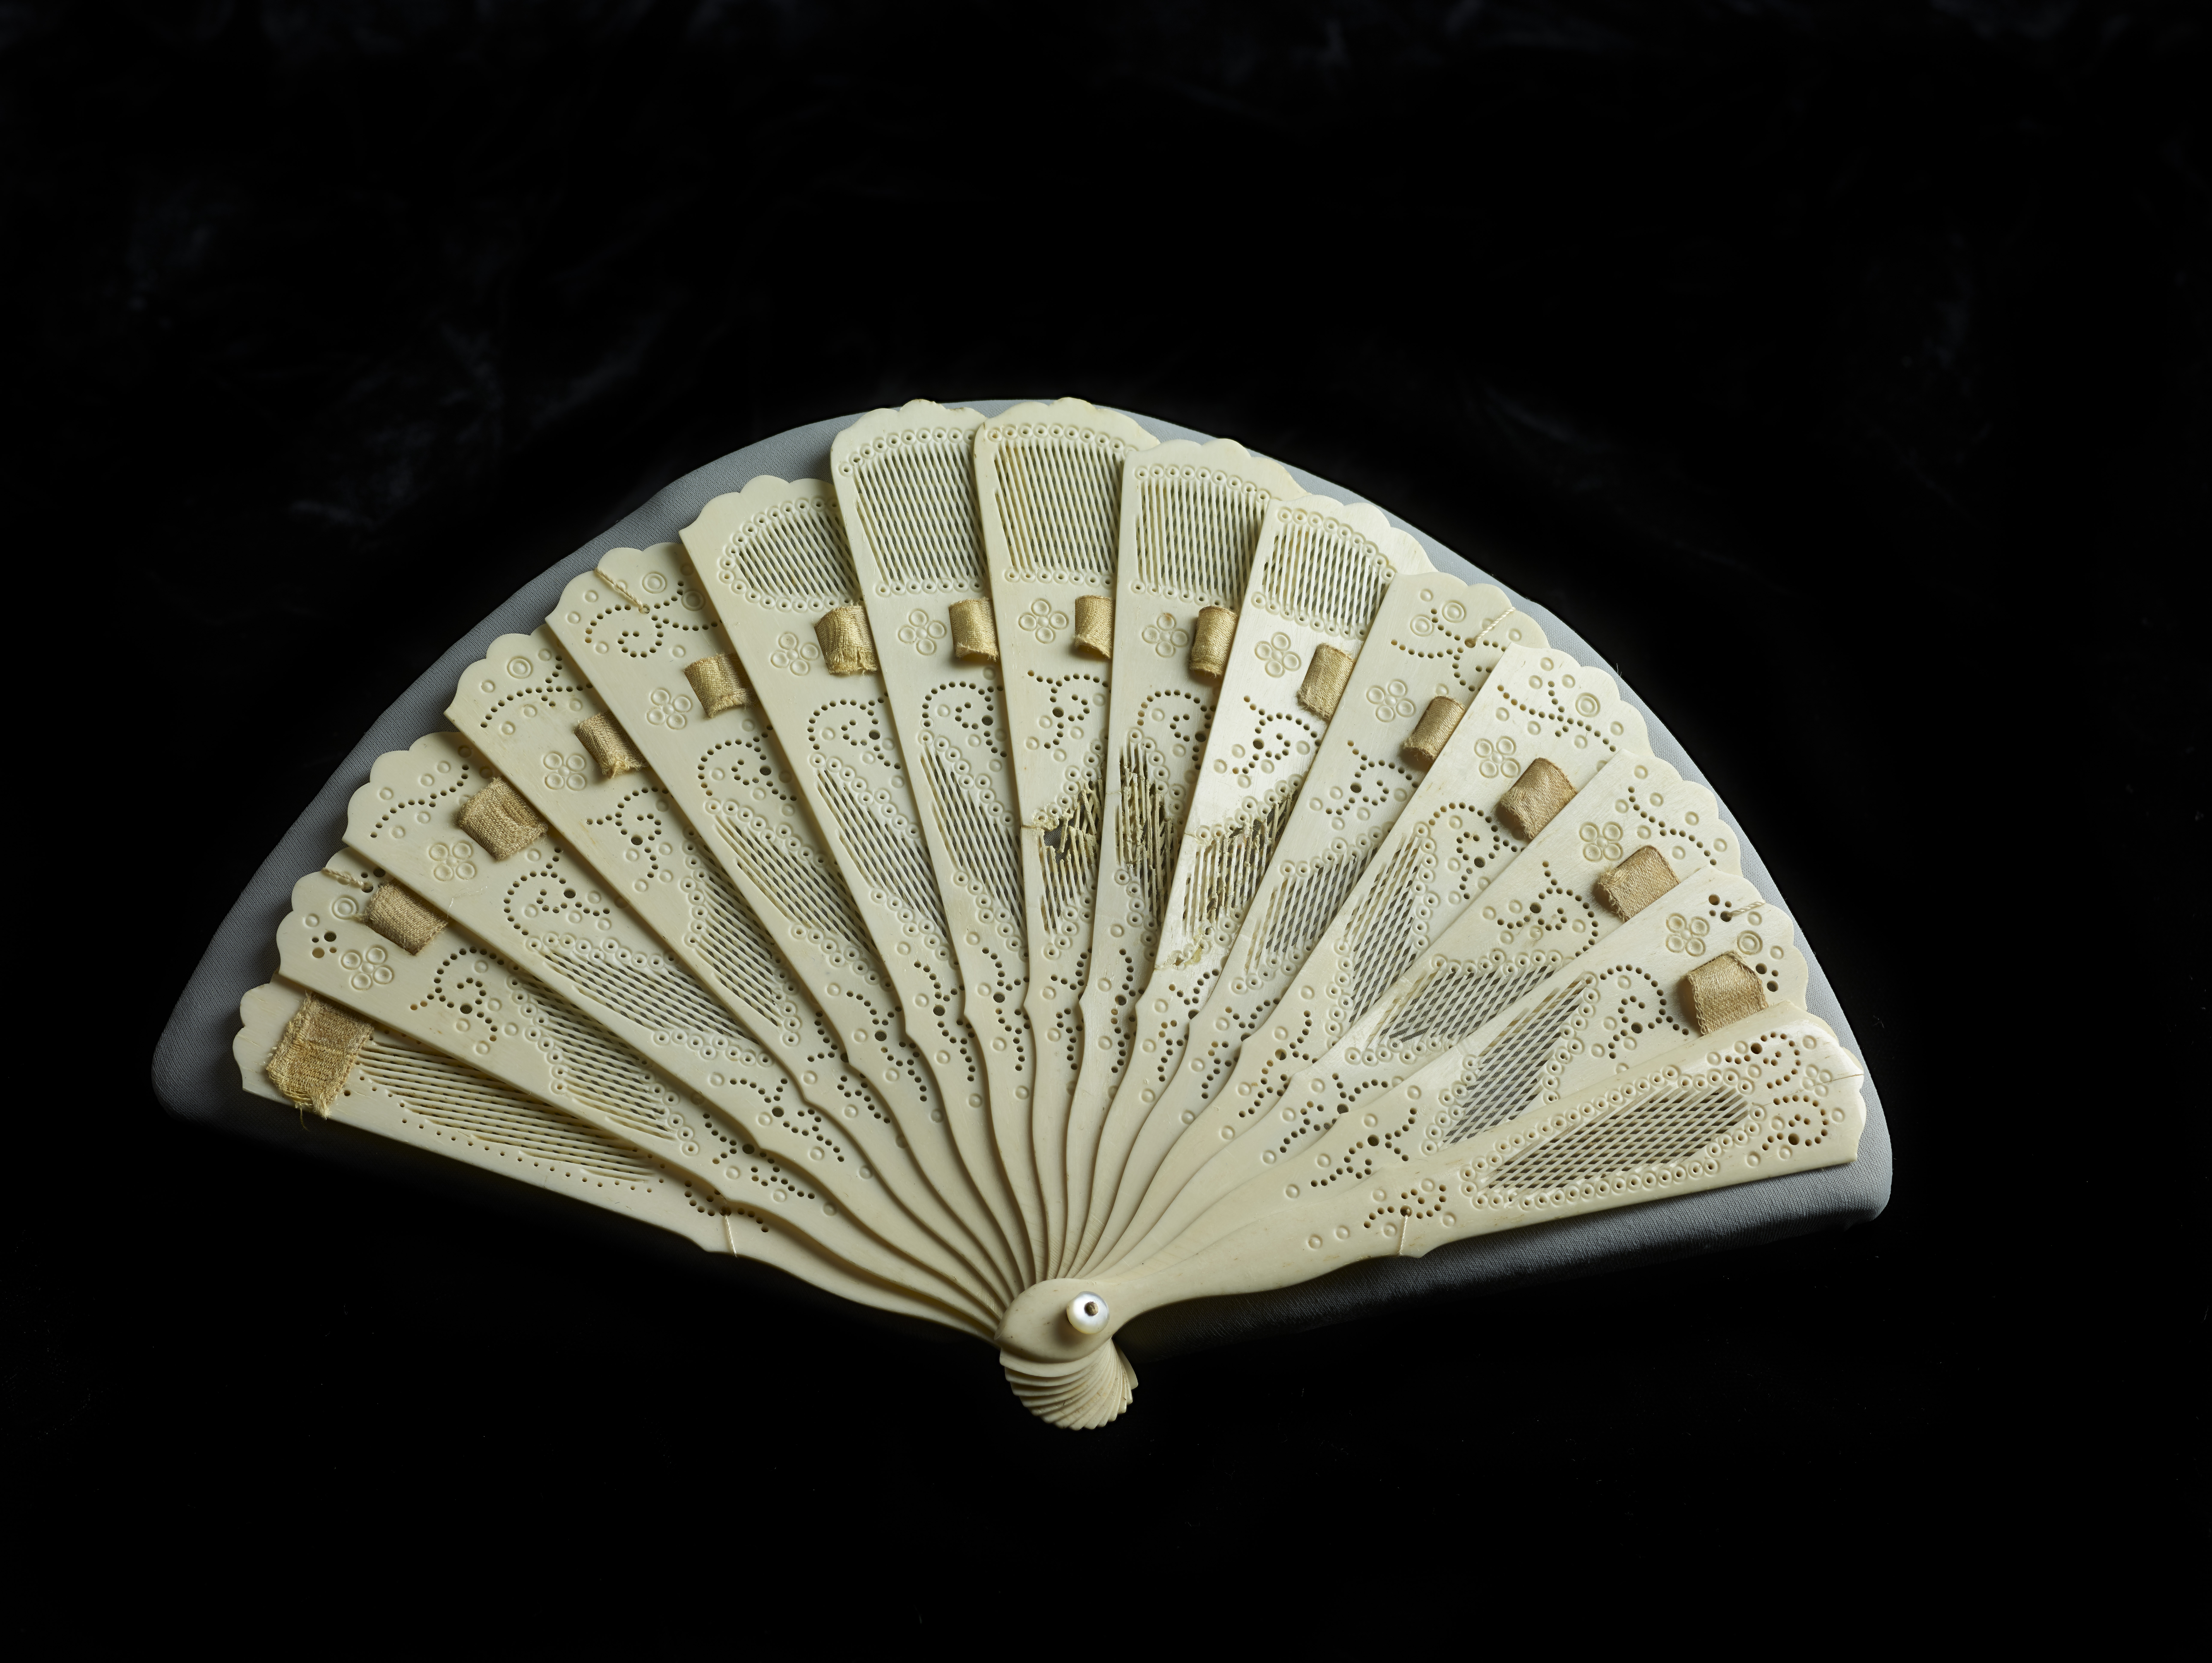 This fan is an example of a luxury item made from elephant ivory